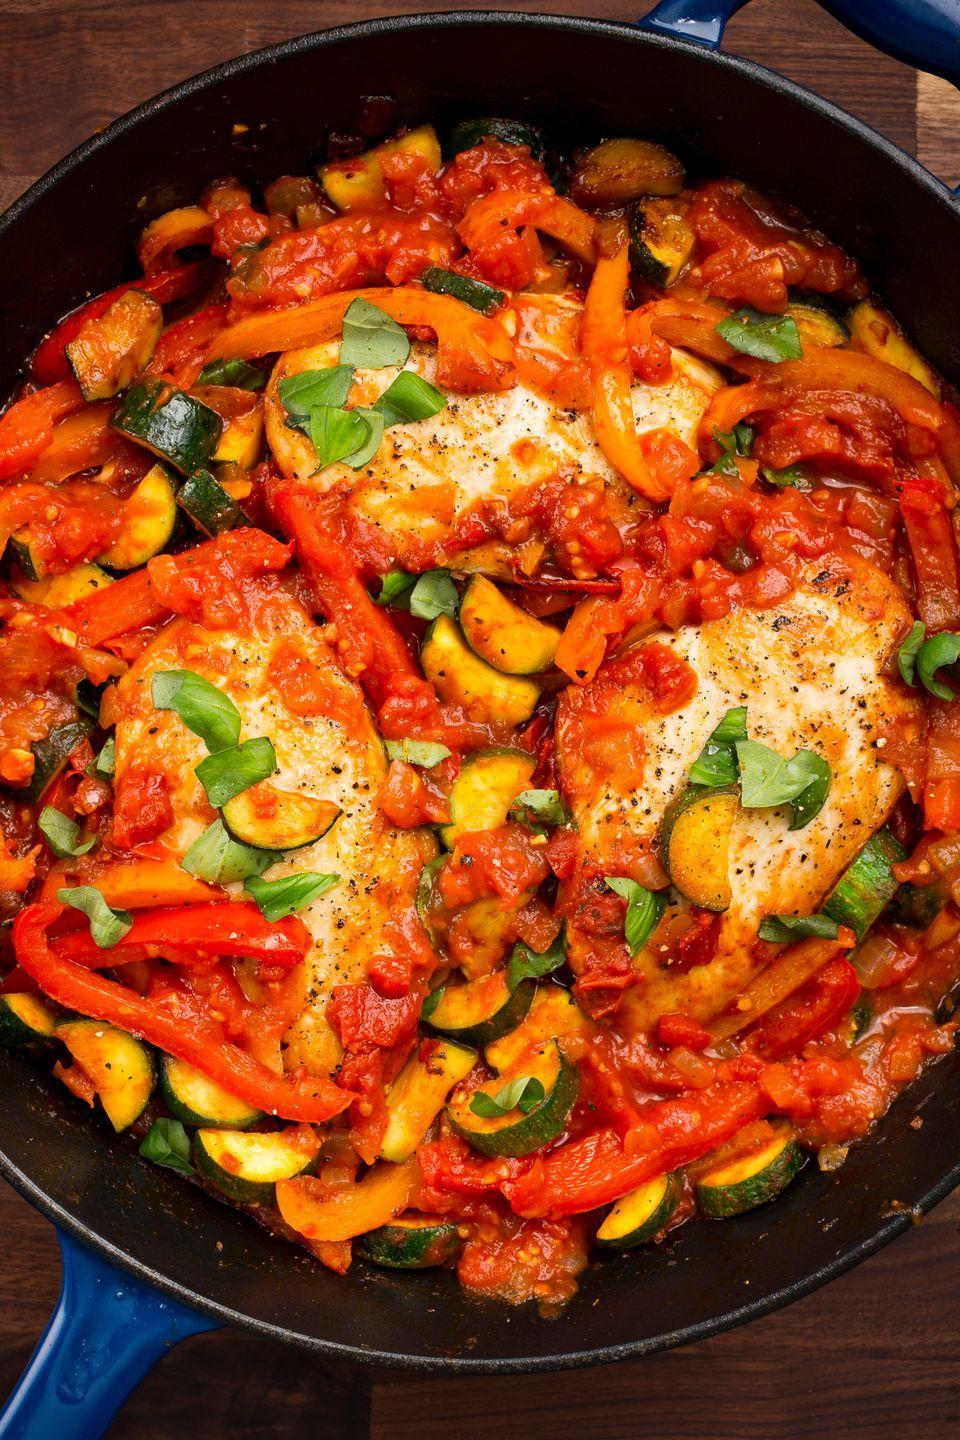 "<p>Customize this versatile skillet with your favorite vegetables!</p><p>Get the recipe from <a href=""https://www.delish.com/cooking/recipe-ideas/recipes/a47442/italian-chicken-skillet-recipe/"" rel=""nofollow noopener"" target=""_blank"" data-ylk=""slk:Delish"" class=""link rapid-noclick-resp"">Delish</a>. </p>"